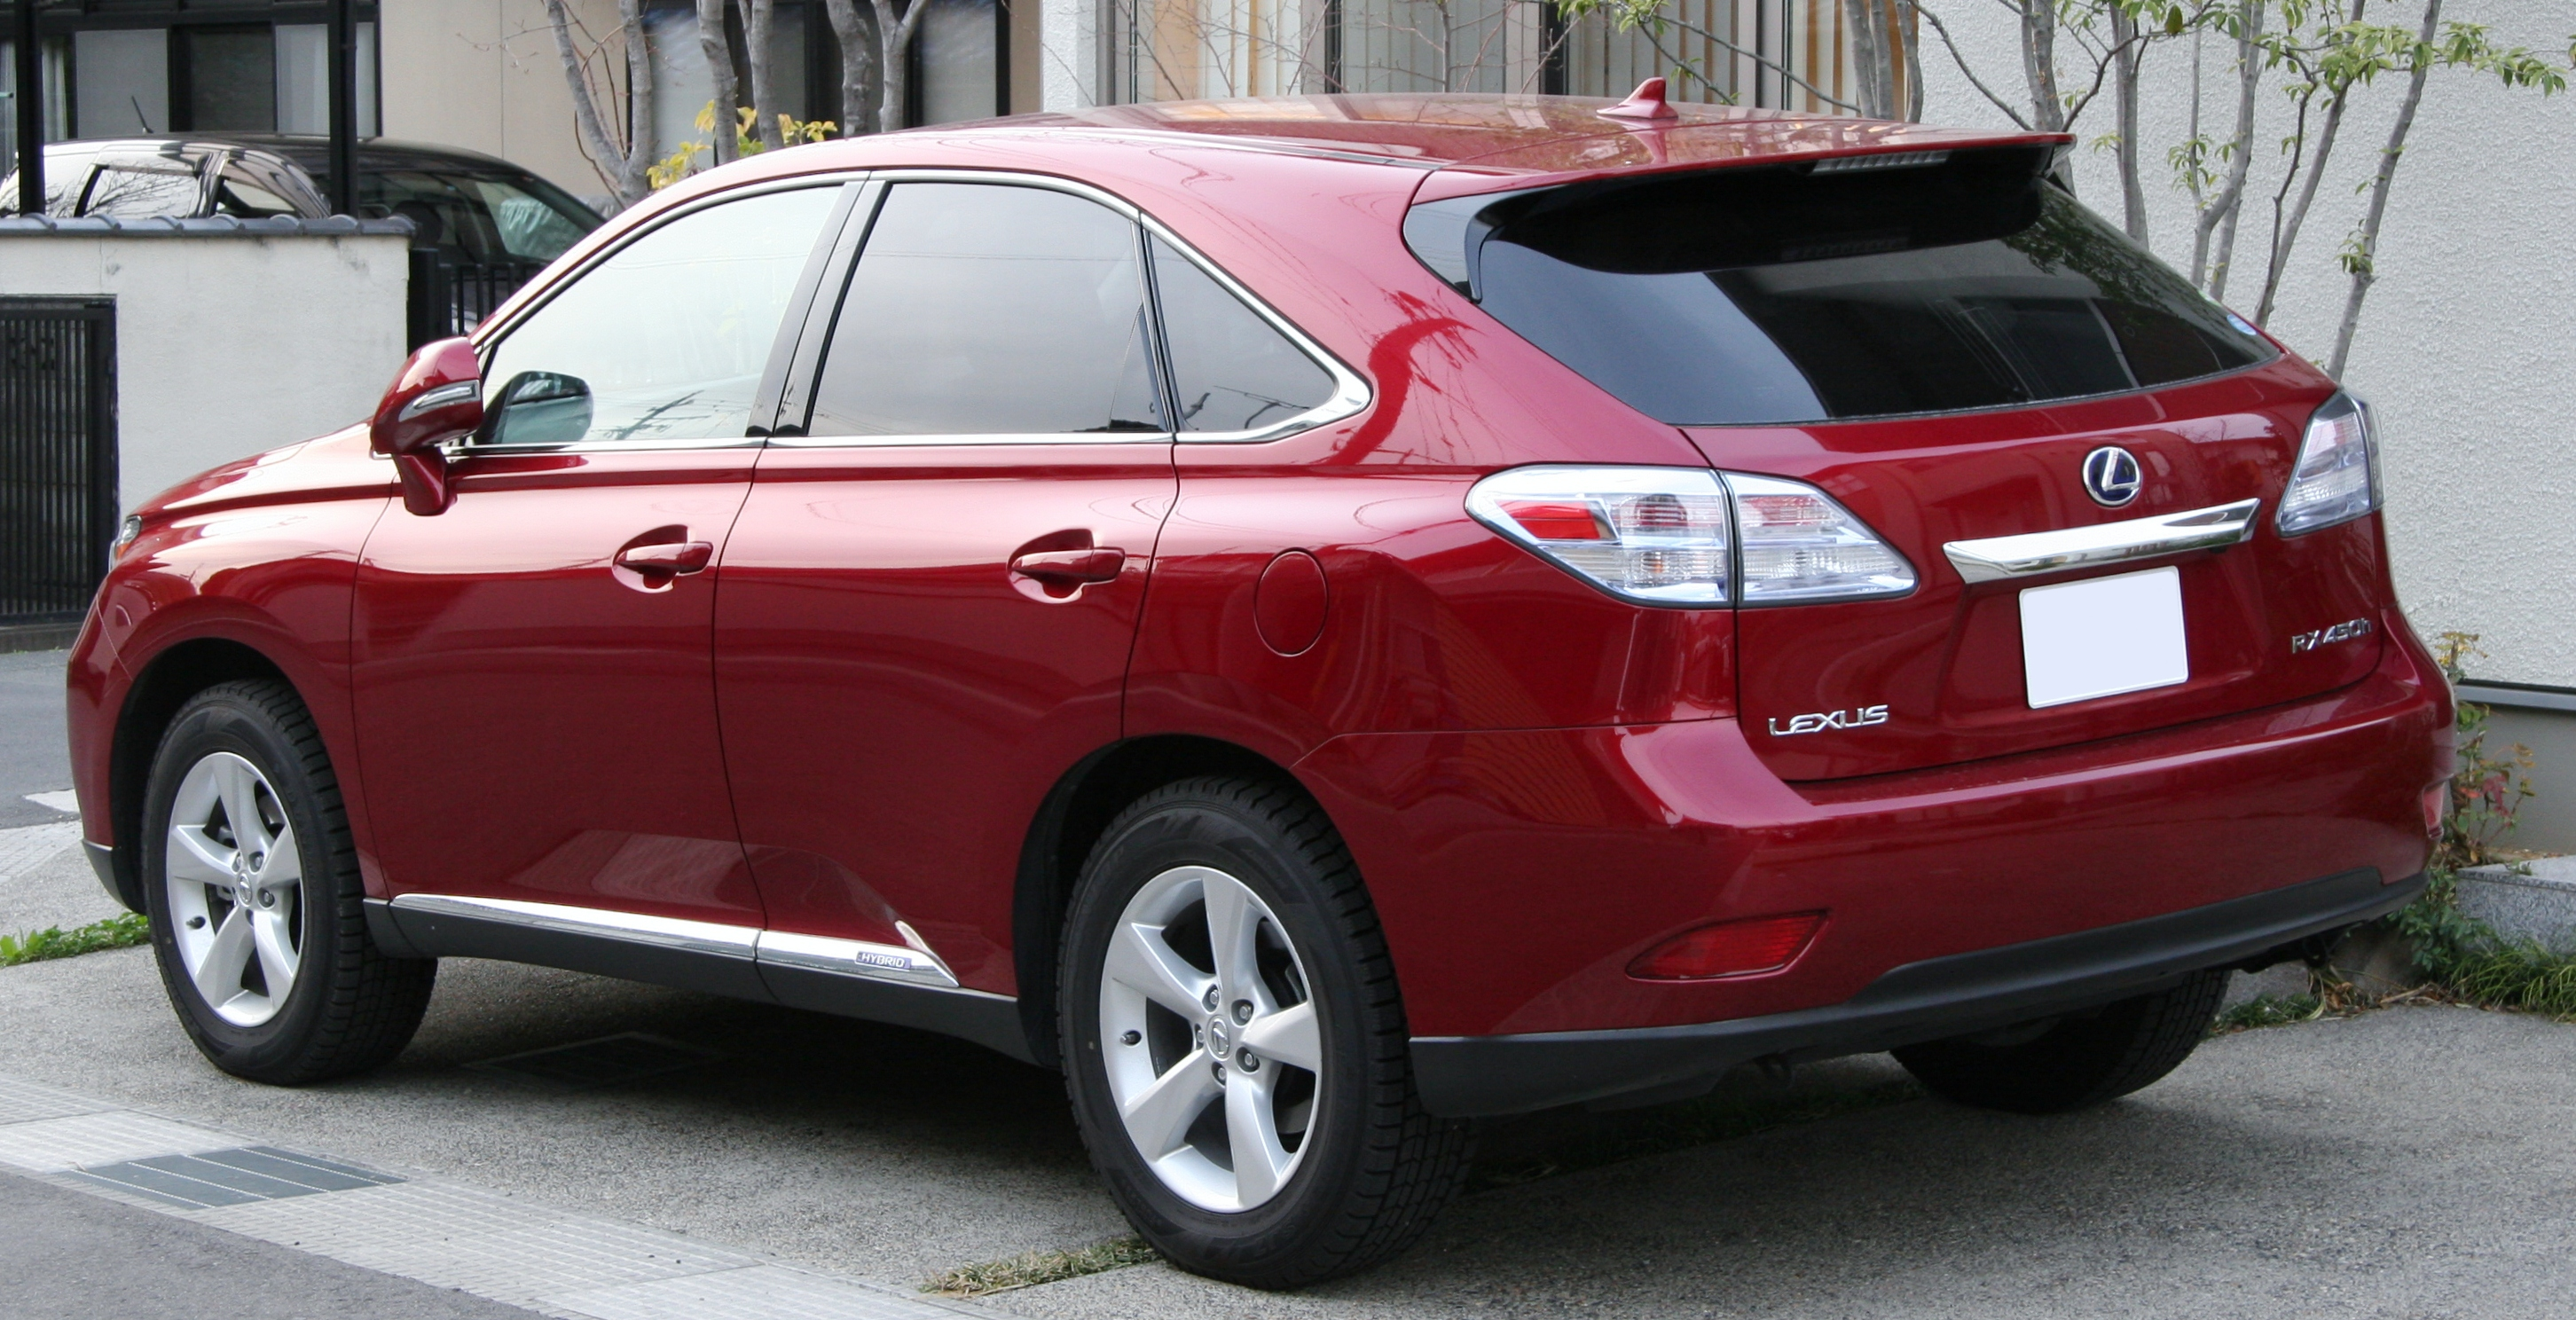 https://upload.wikimedia.org/wikipedia/commons/0/06/Lexus_RX450h_rear.jpg